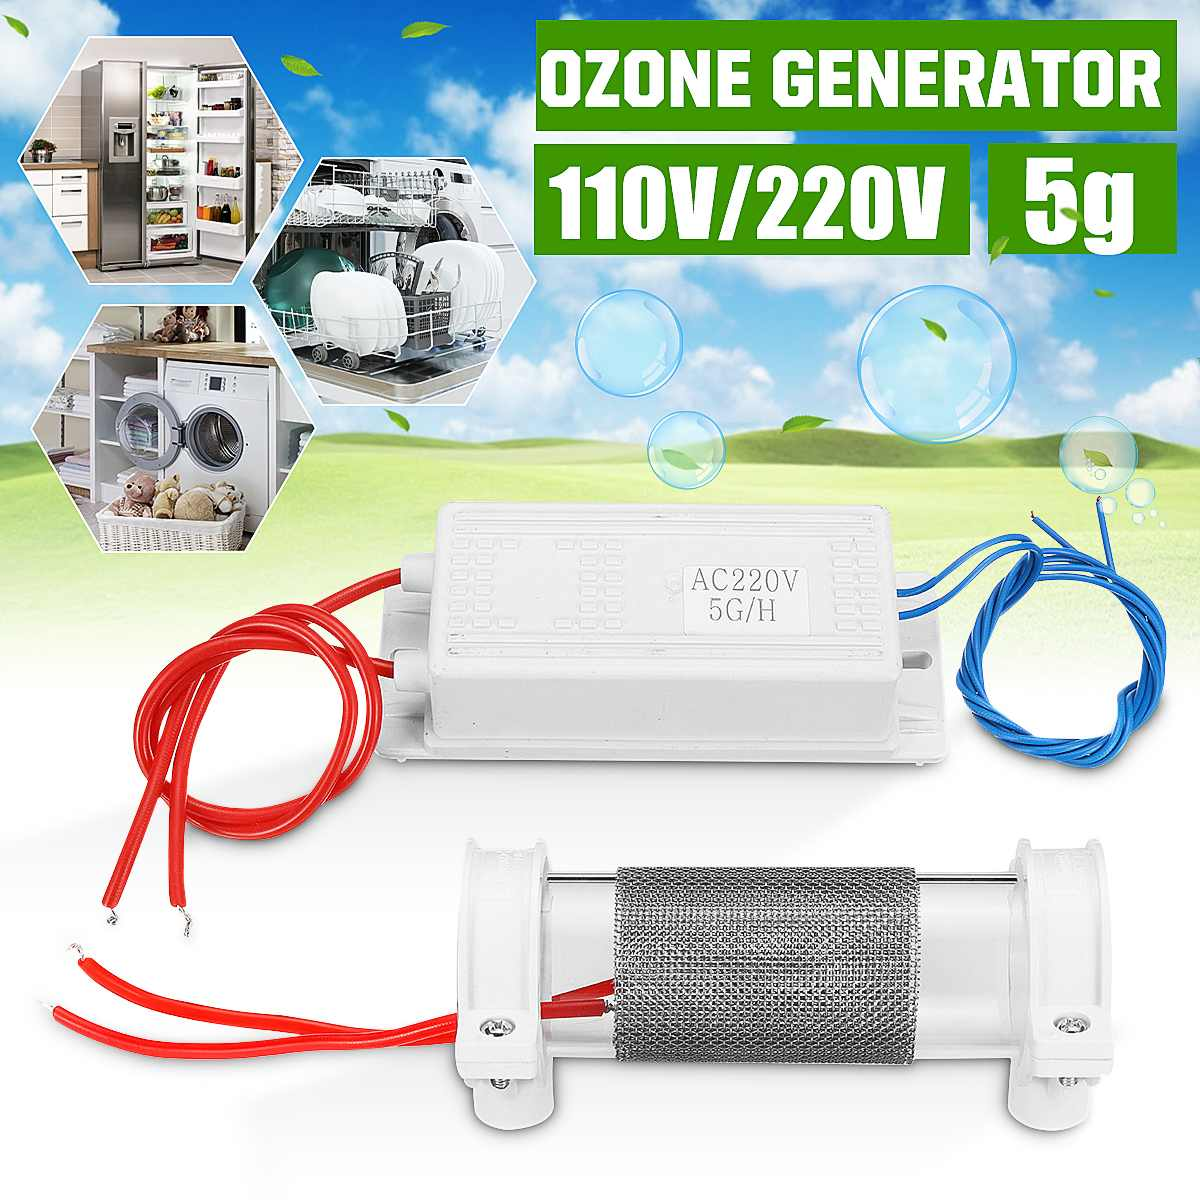 5g/h Ozone Generator Quartz Tube Generator Air Purifier For Home Air Disinfection Sterilization Purification Air Water Cleaner